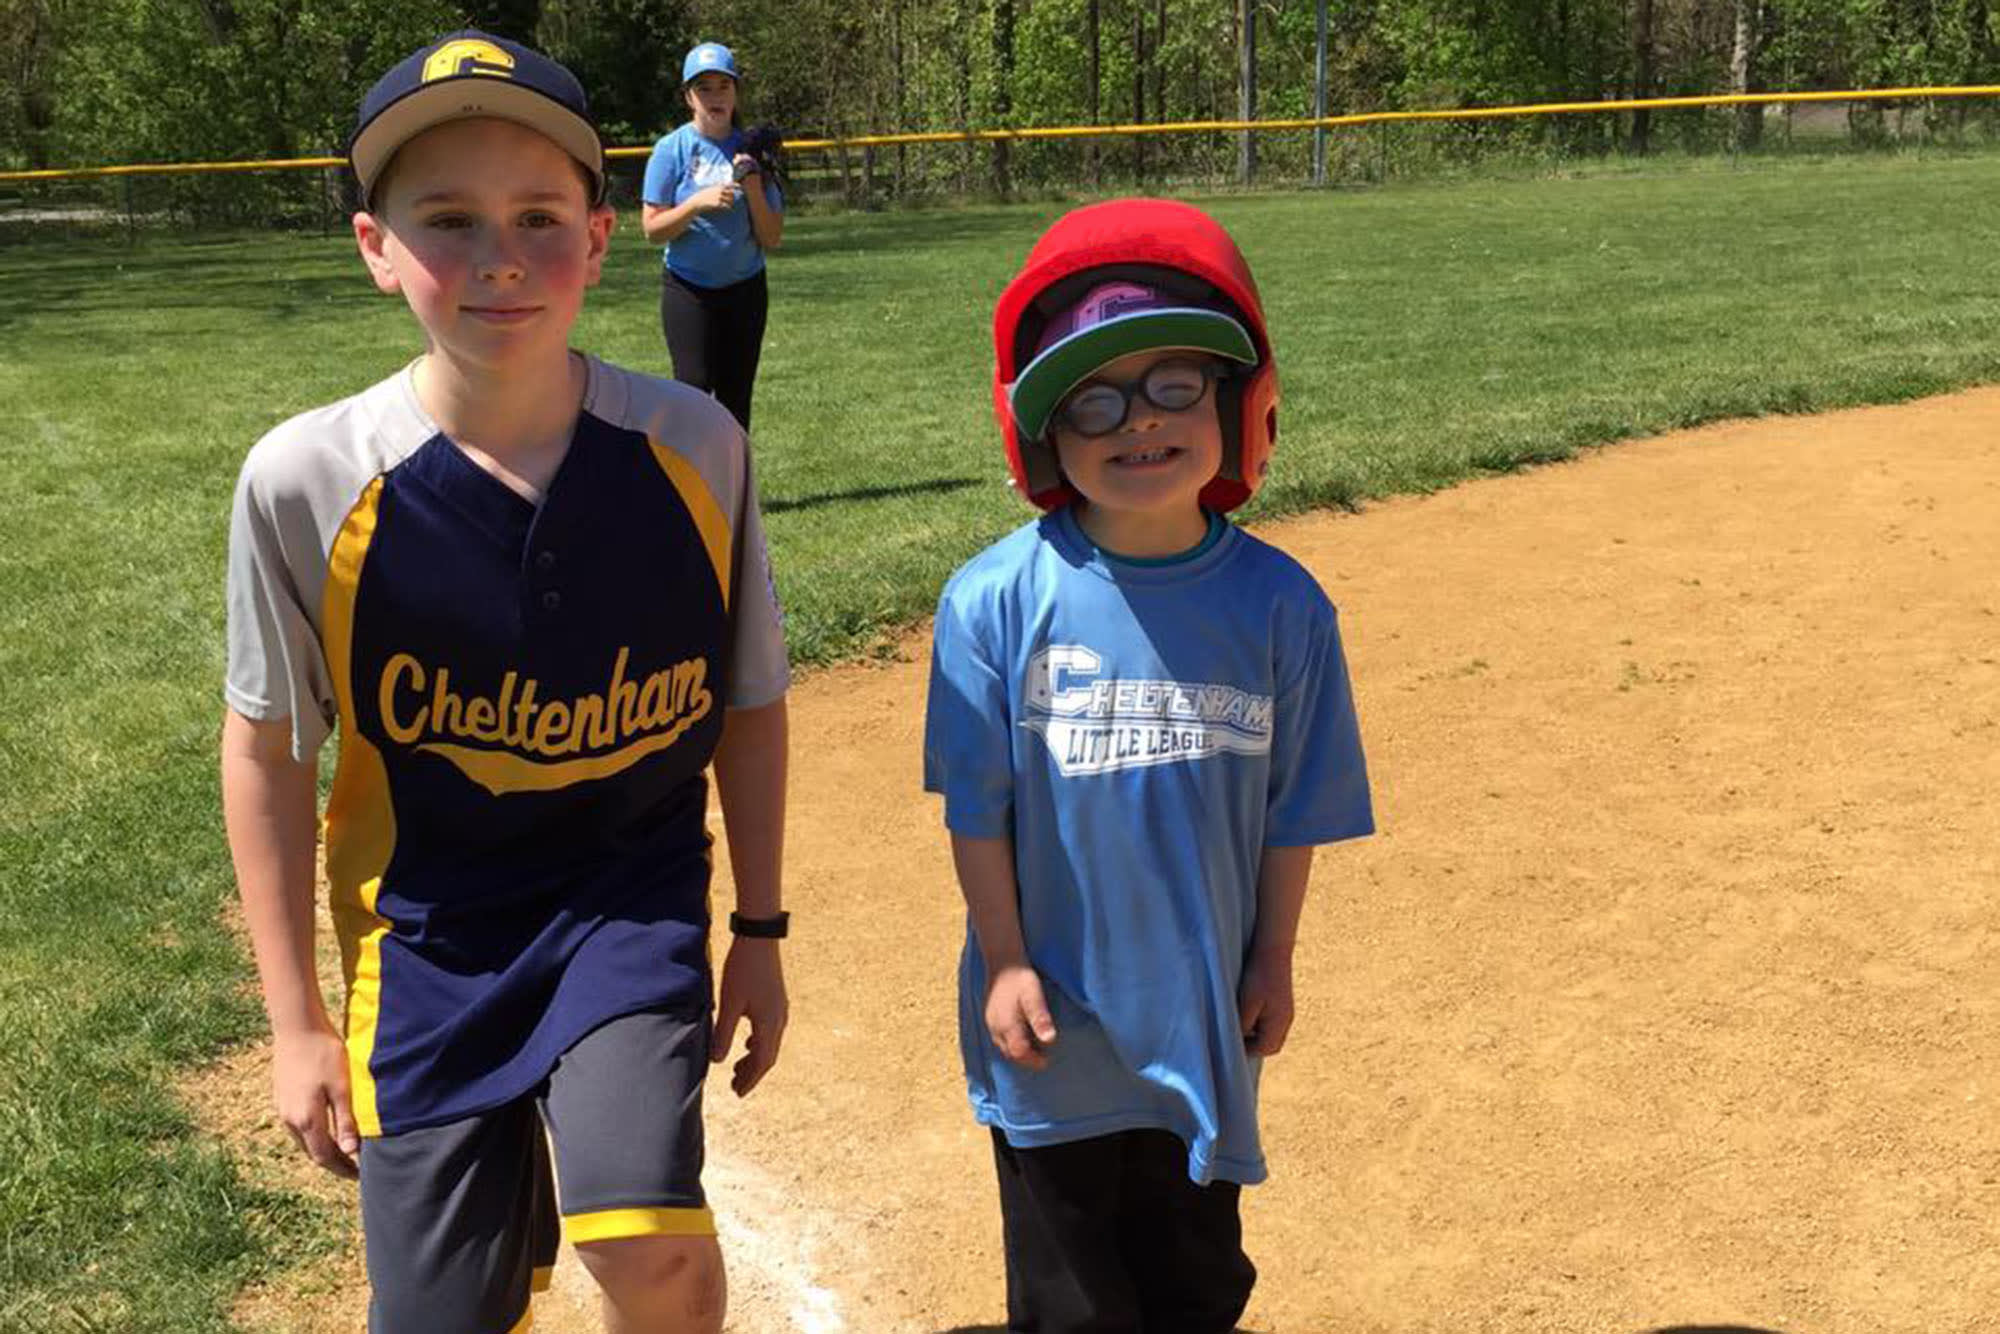 Cheltenham (Pa.) Little League player with buddy